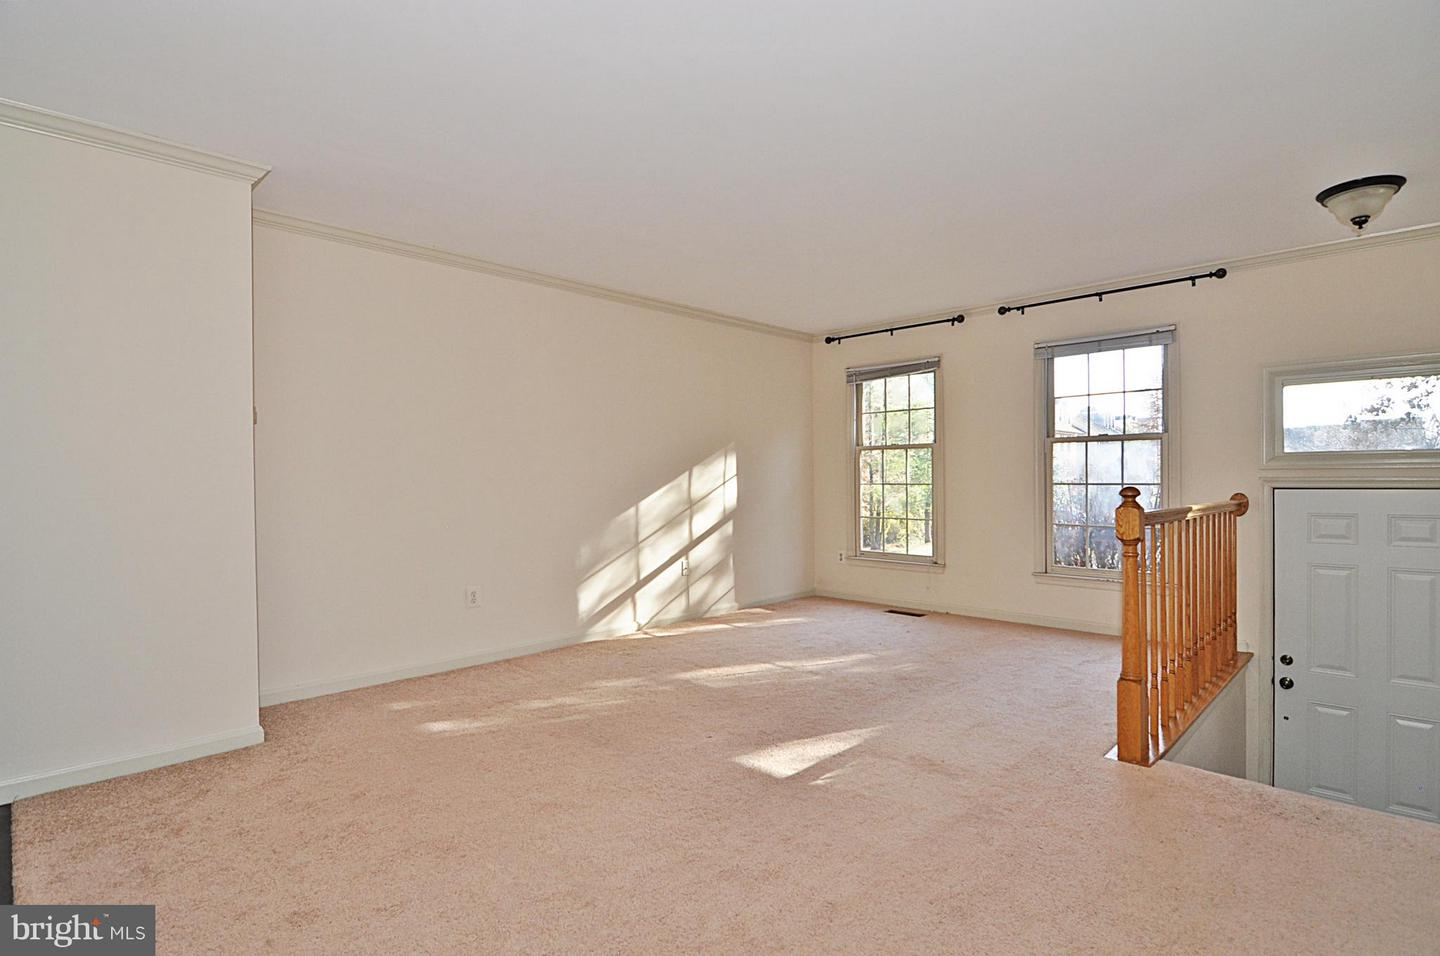 Additional photo for property listing at 1231 Quaker Hill Dr 1231 Quaker Hill Dr Alexandria, Virginia 22314 United States